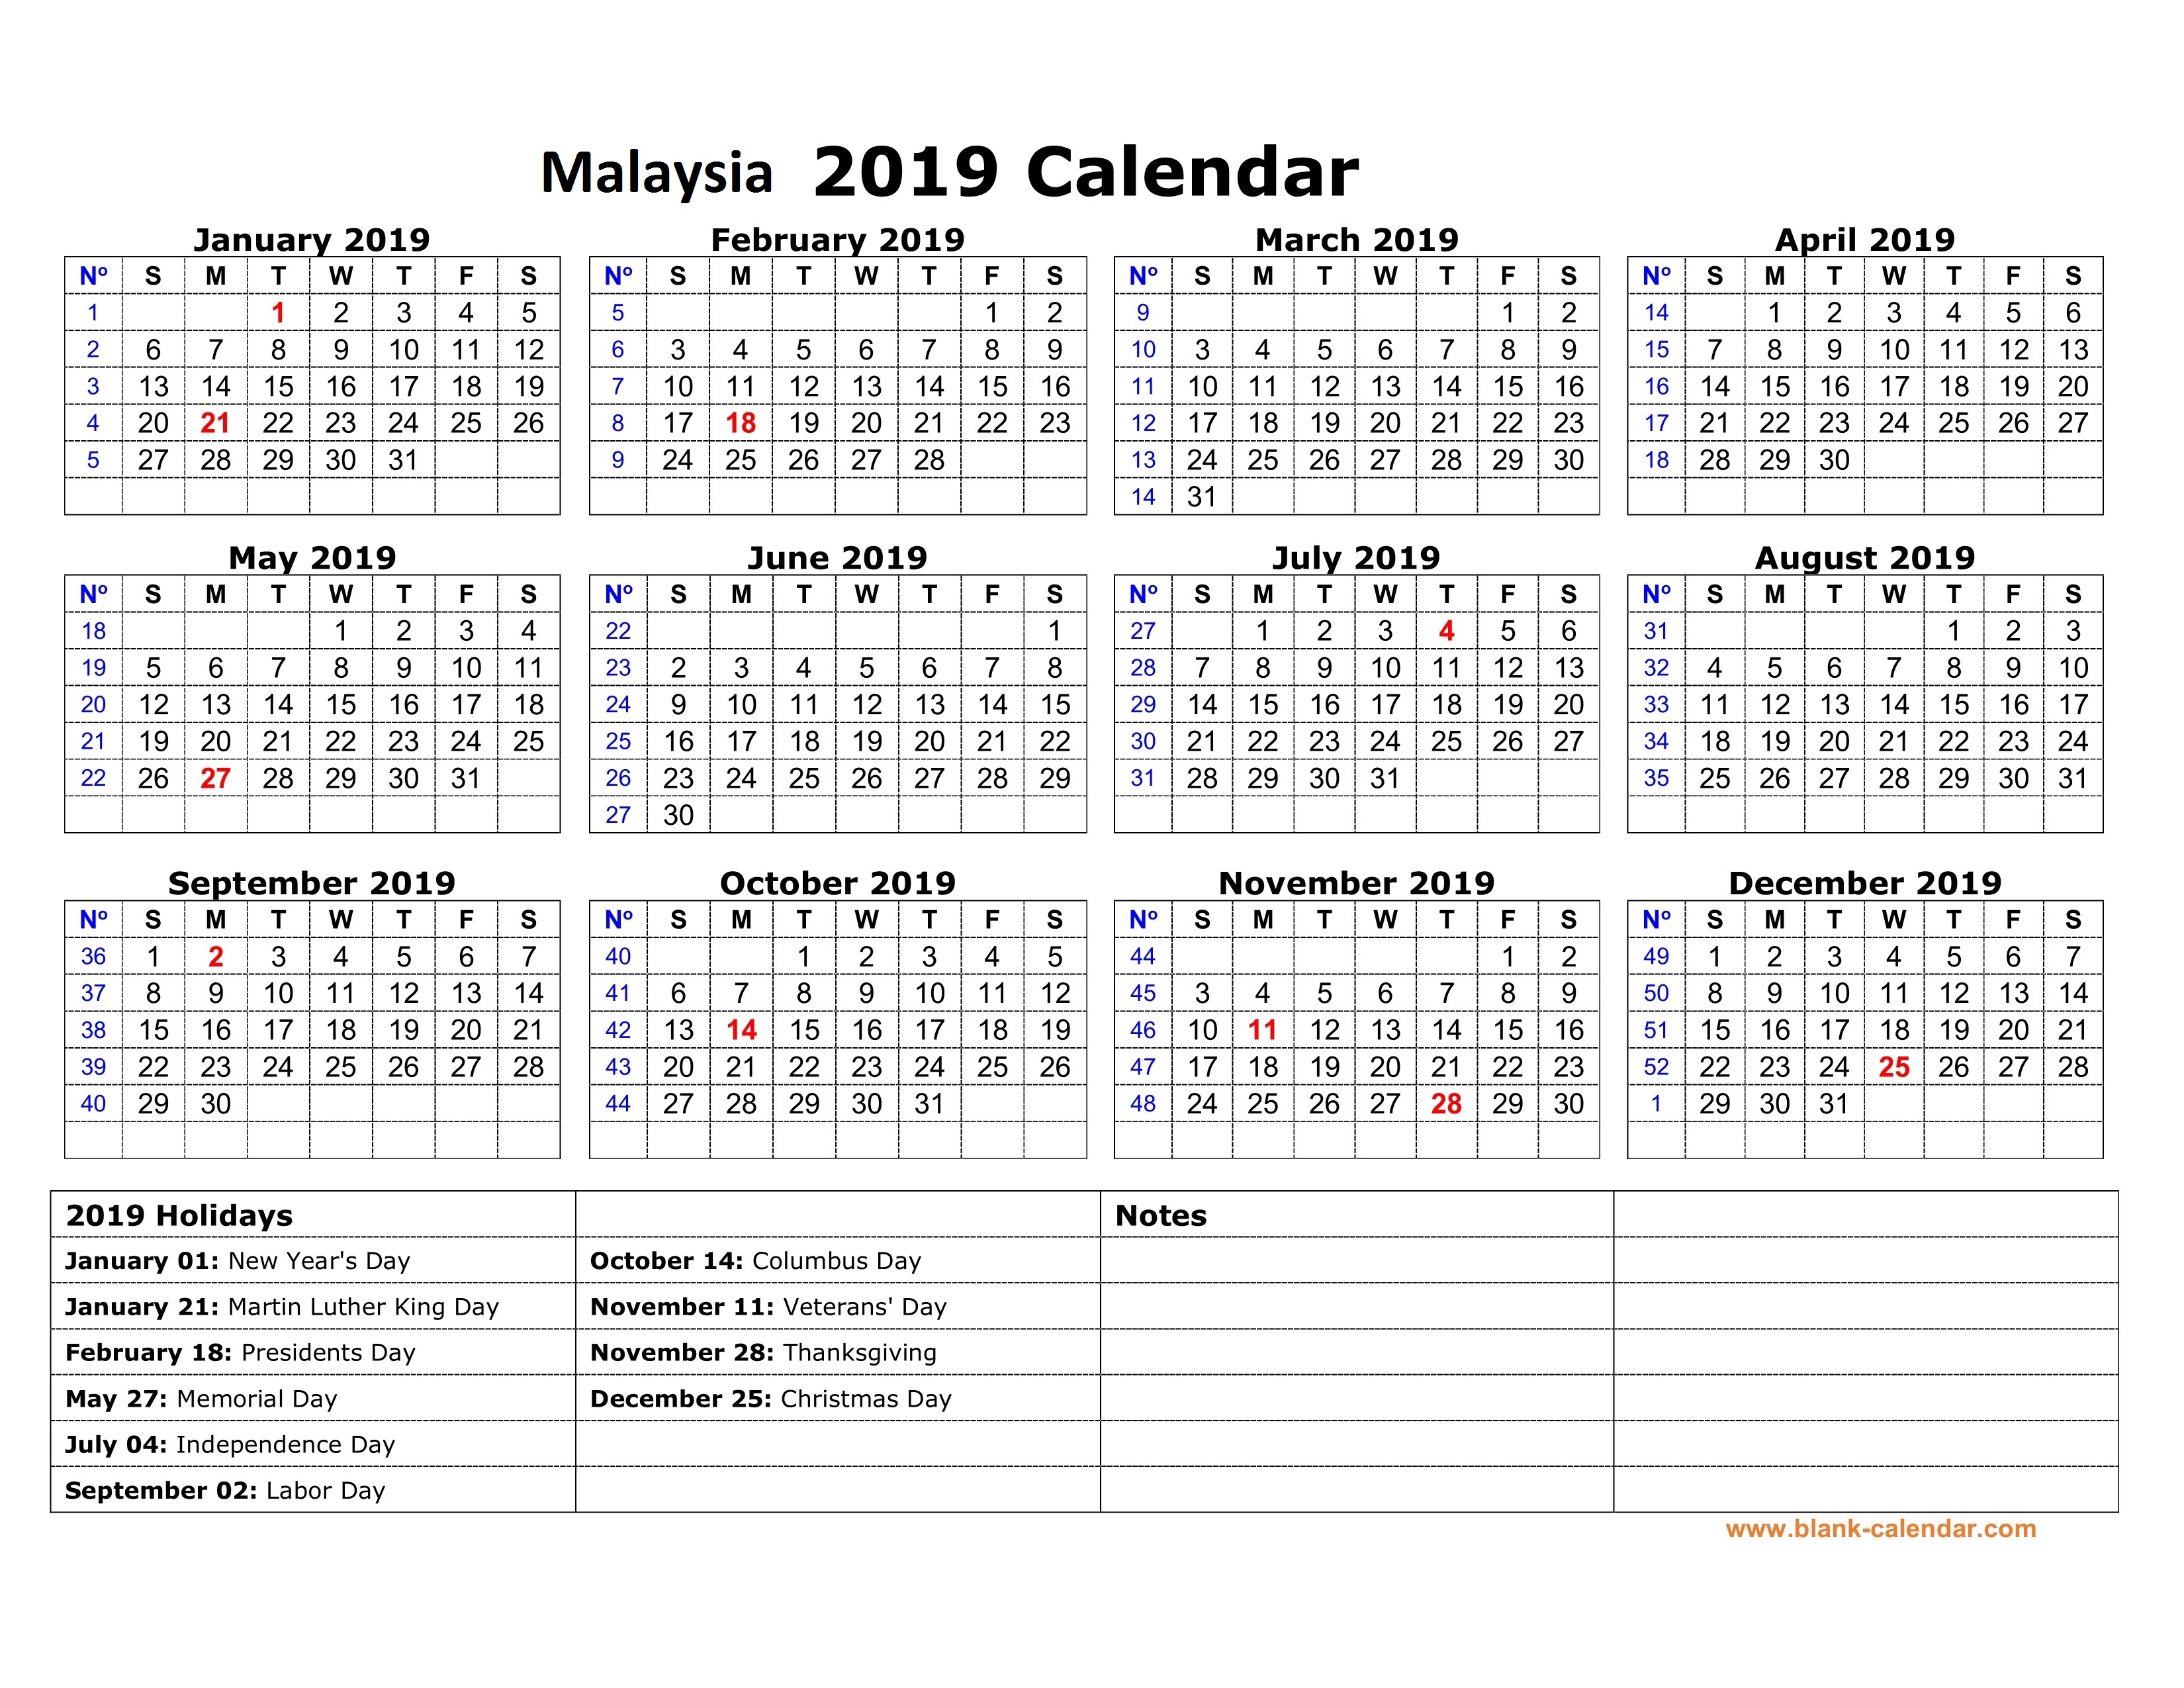 Next Year Calendar 2019 With Holidays Printable Yearly Malaysia Free Template